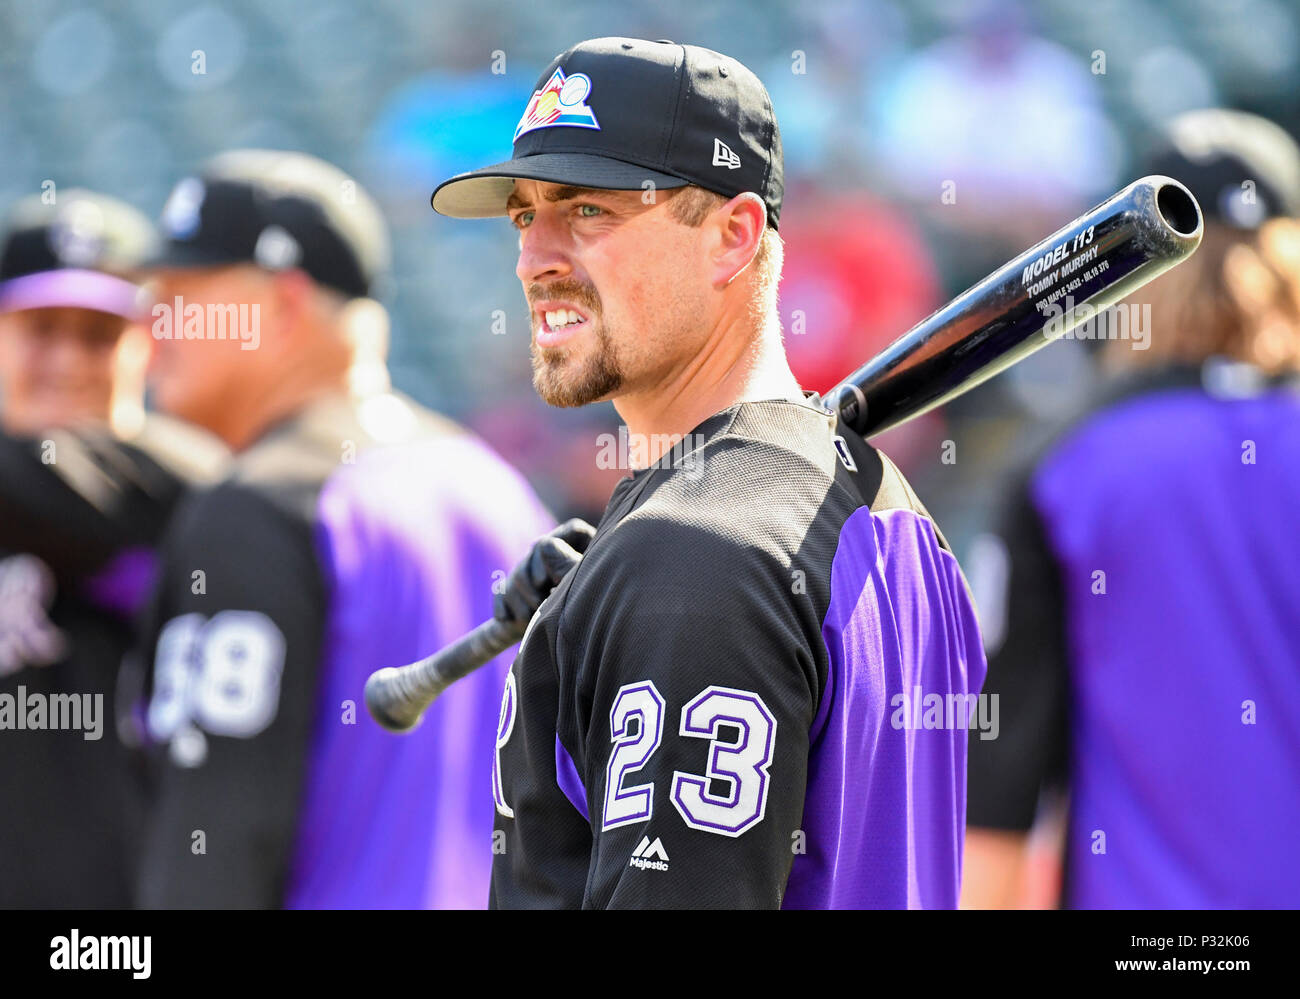 86c1b850e Jun 15, 2018: Colorado Rockies catcher Tom Murphy #23 during batting  practice before an MLB game between the Colorado Rockies and the Texas  Rangers at Globe ...